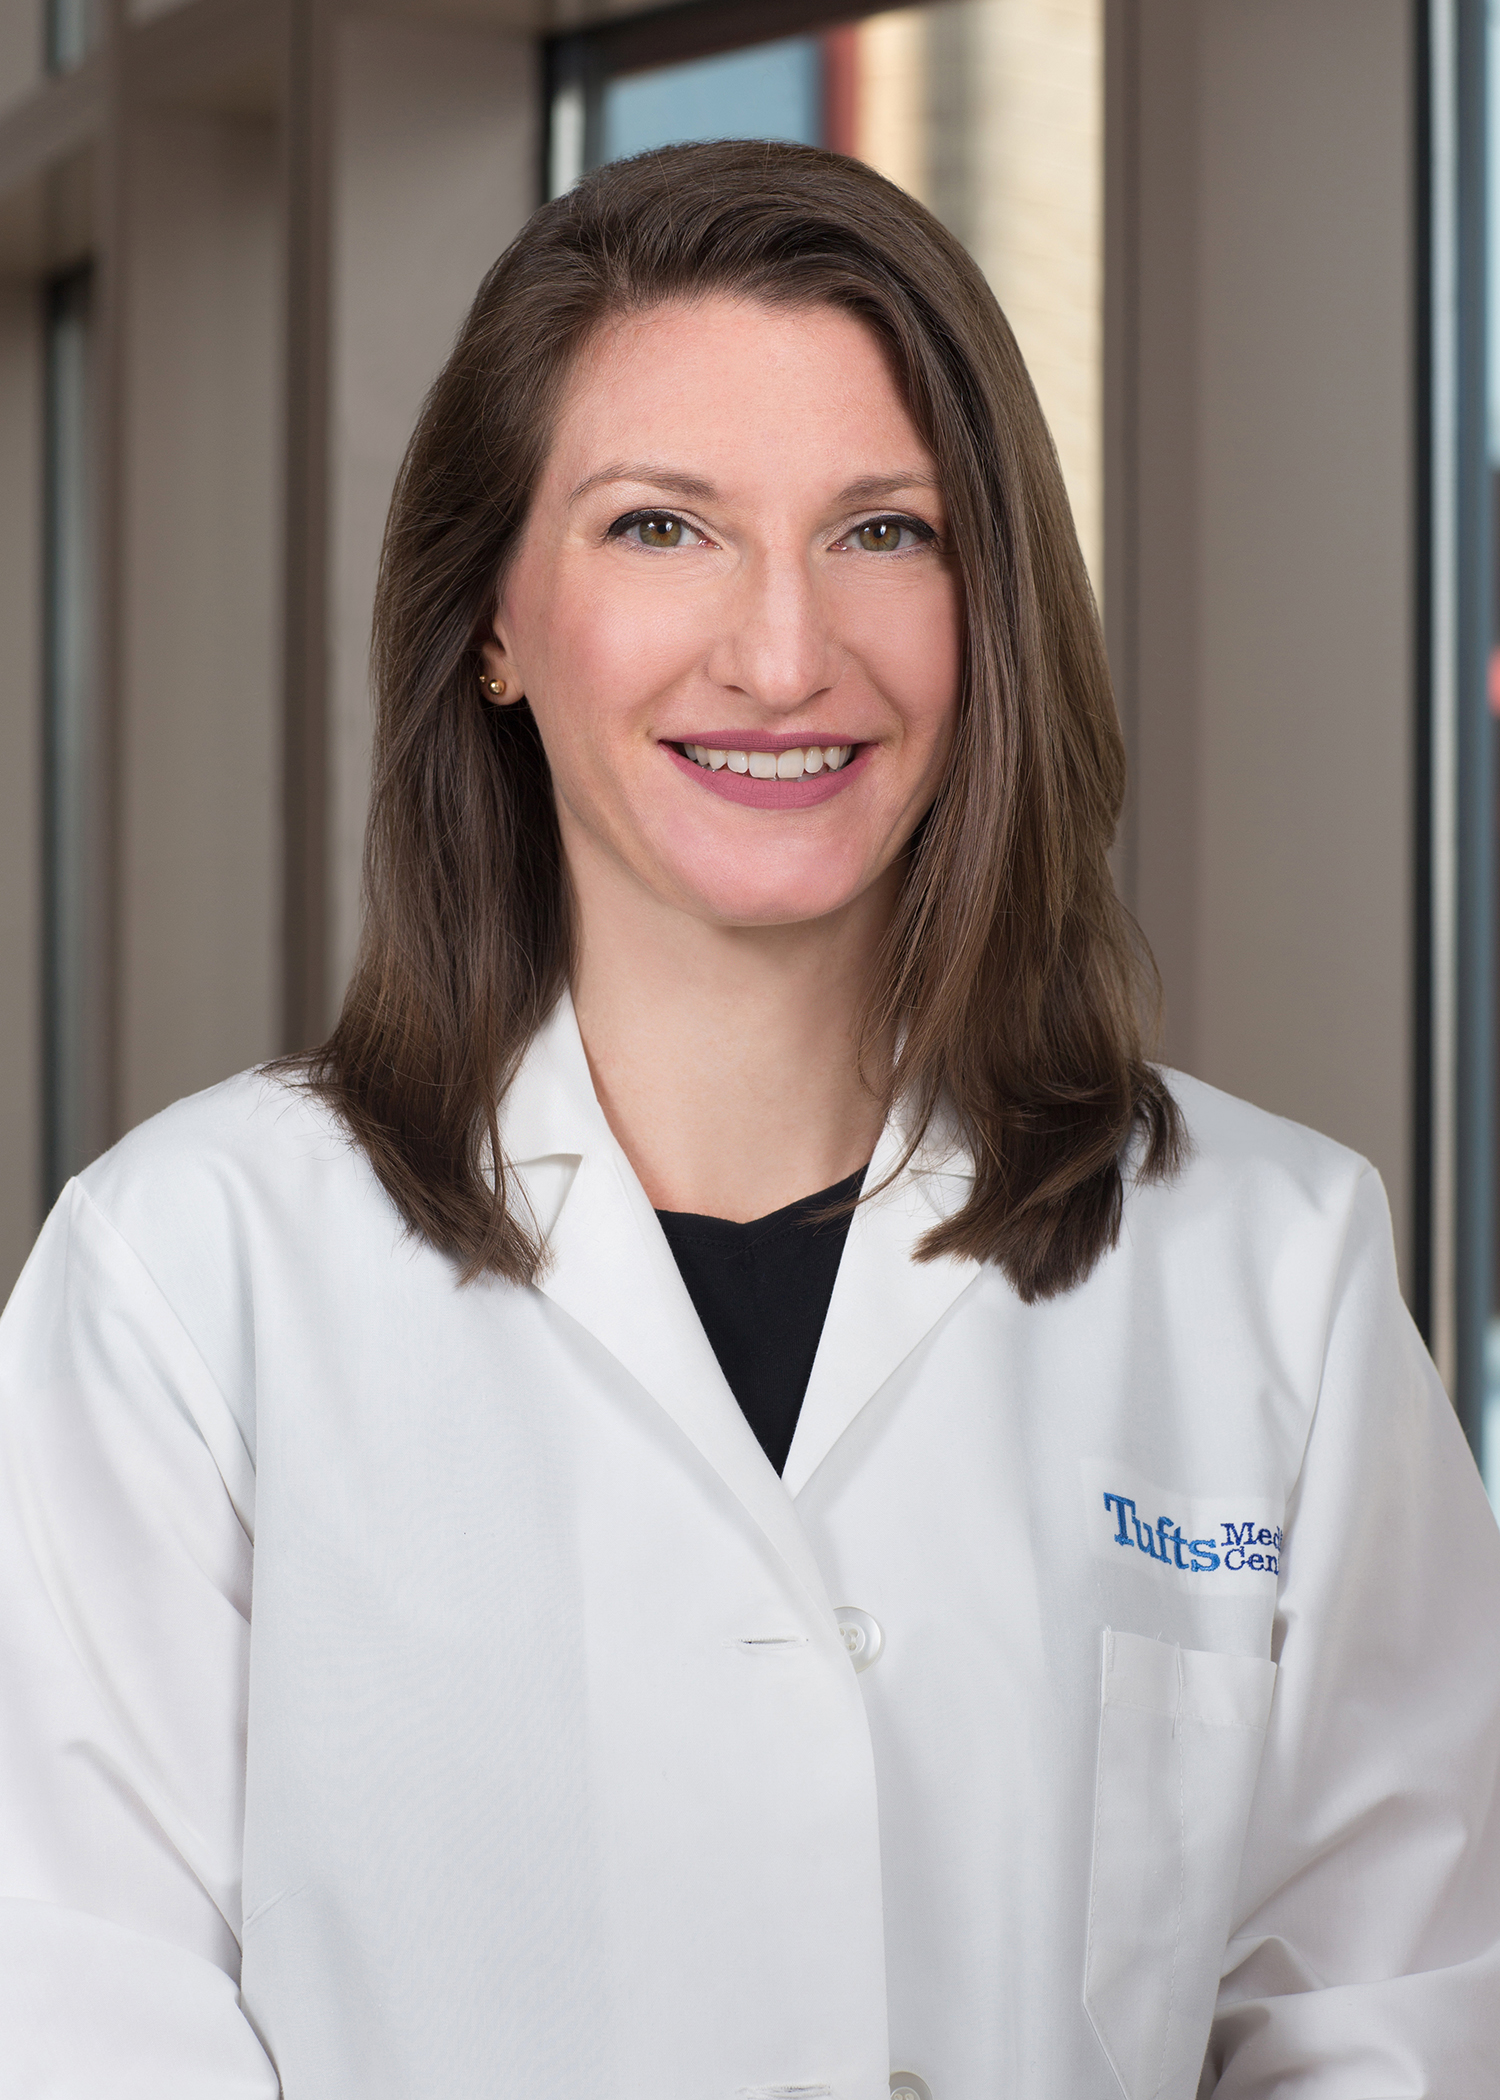 Tiffany A. Kolniak, MD, PhD